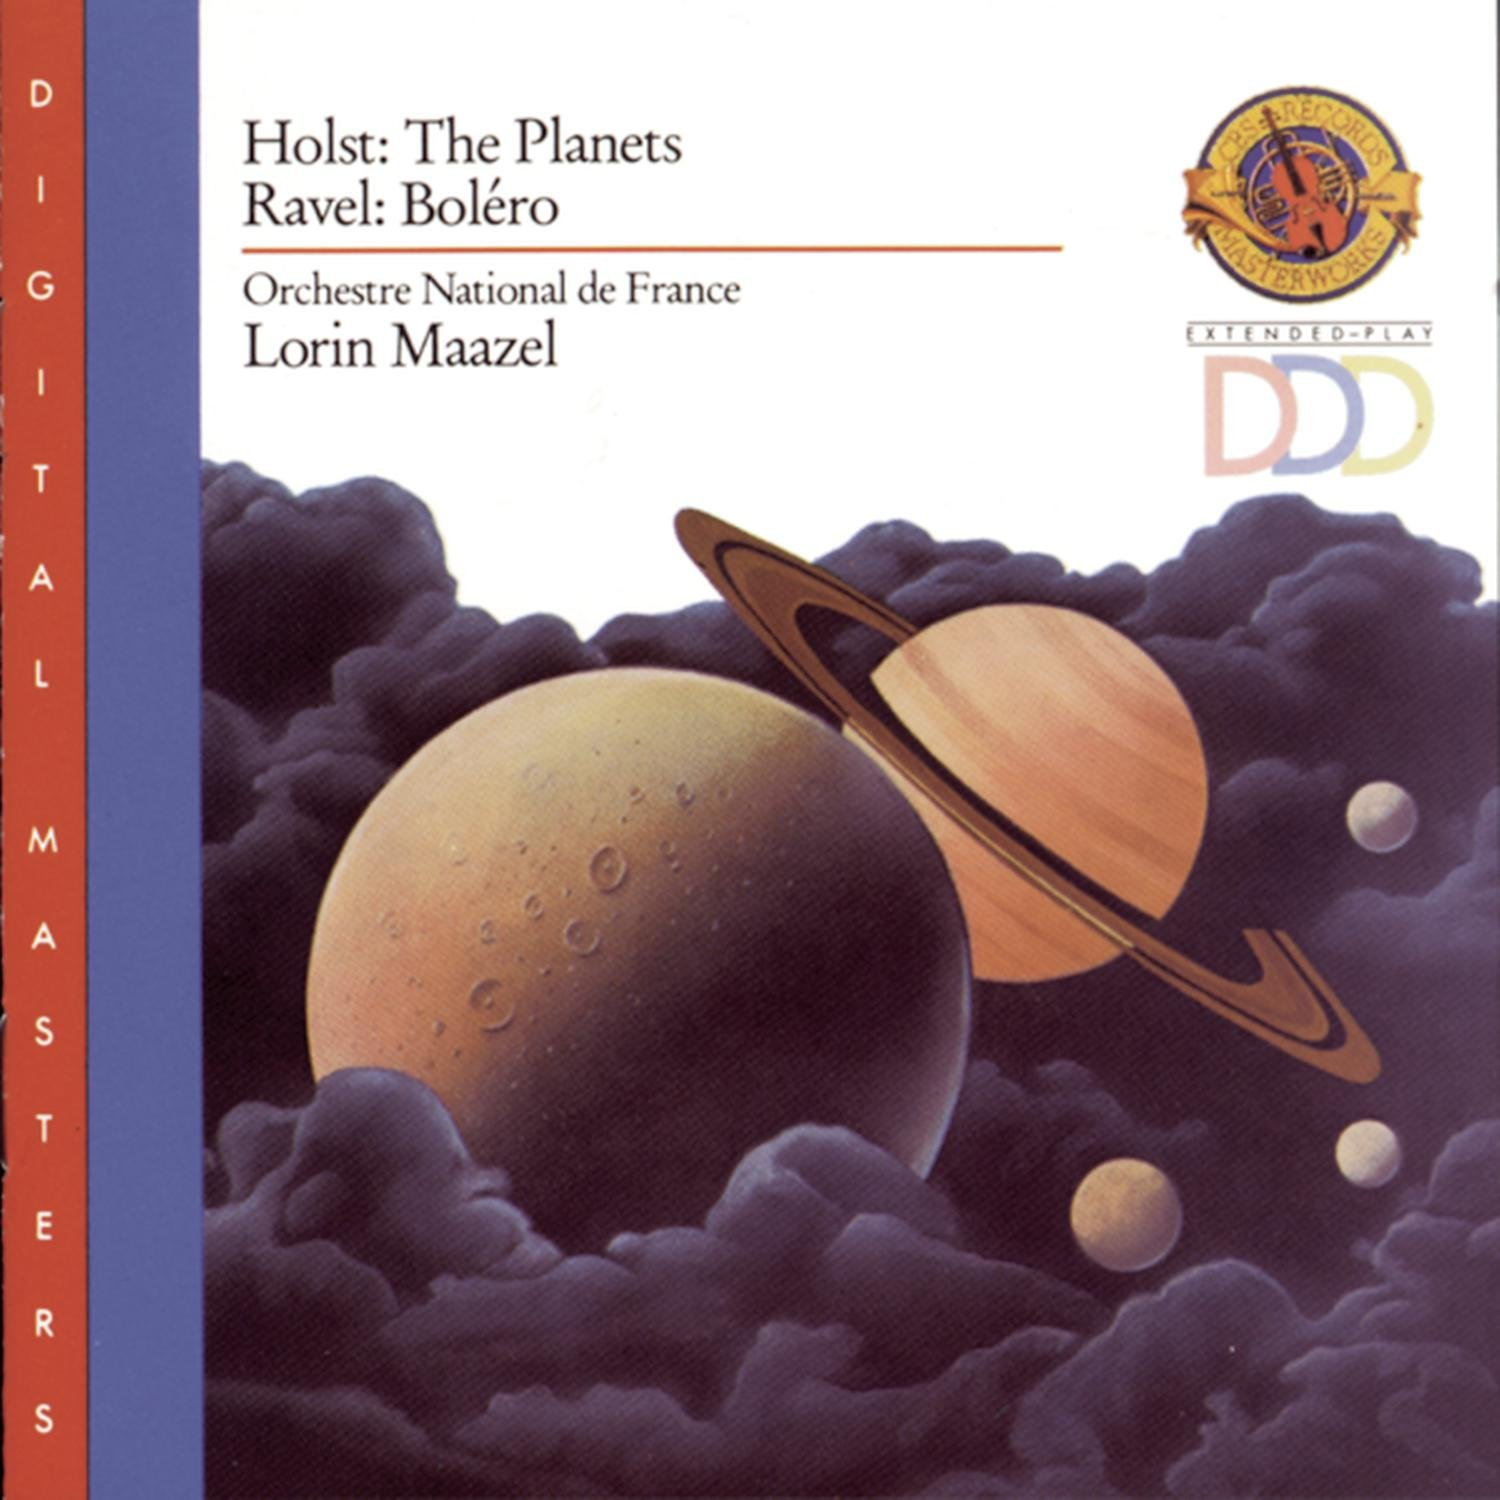 Holst: The Planets and Ravel: Bolero by Sony Classical